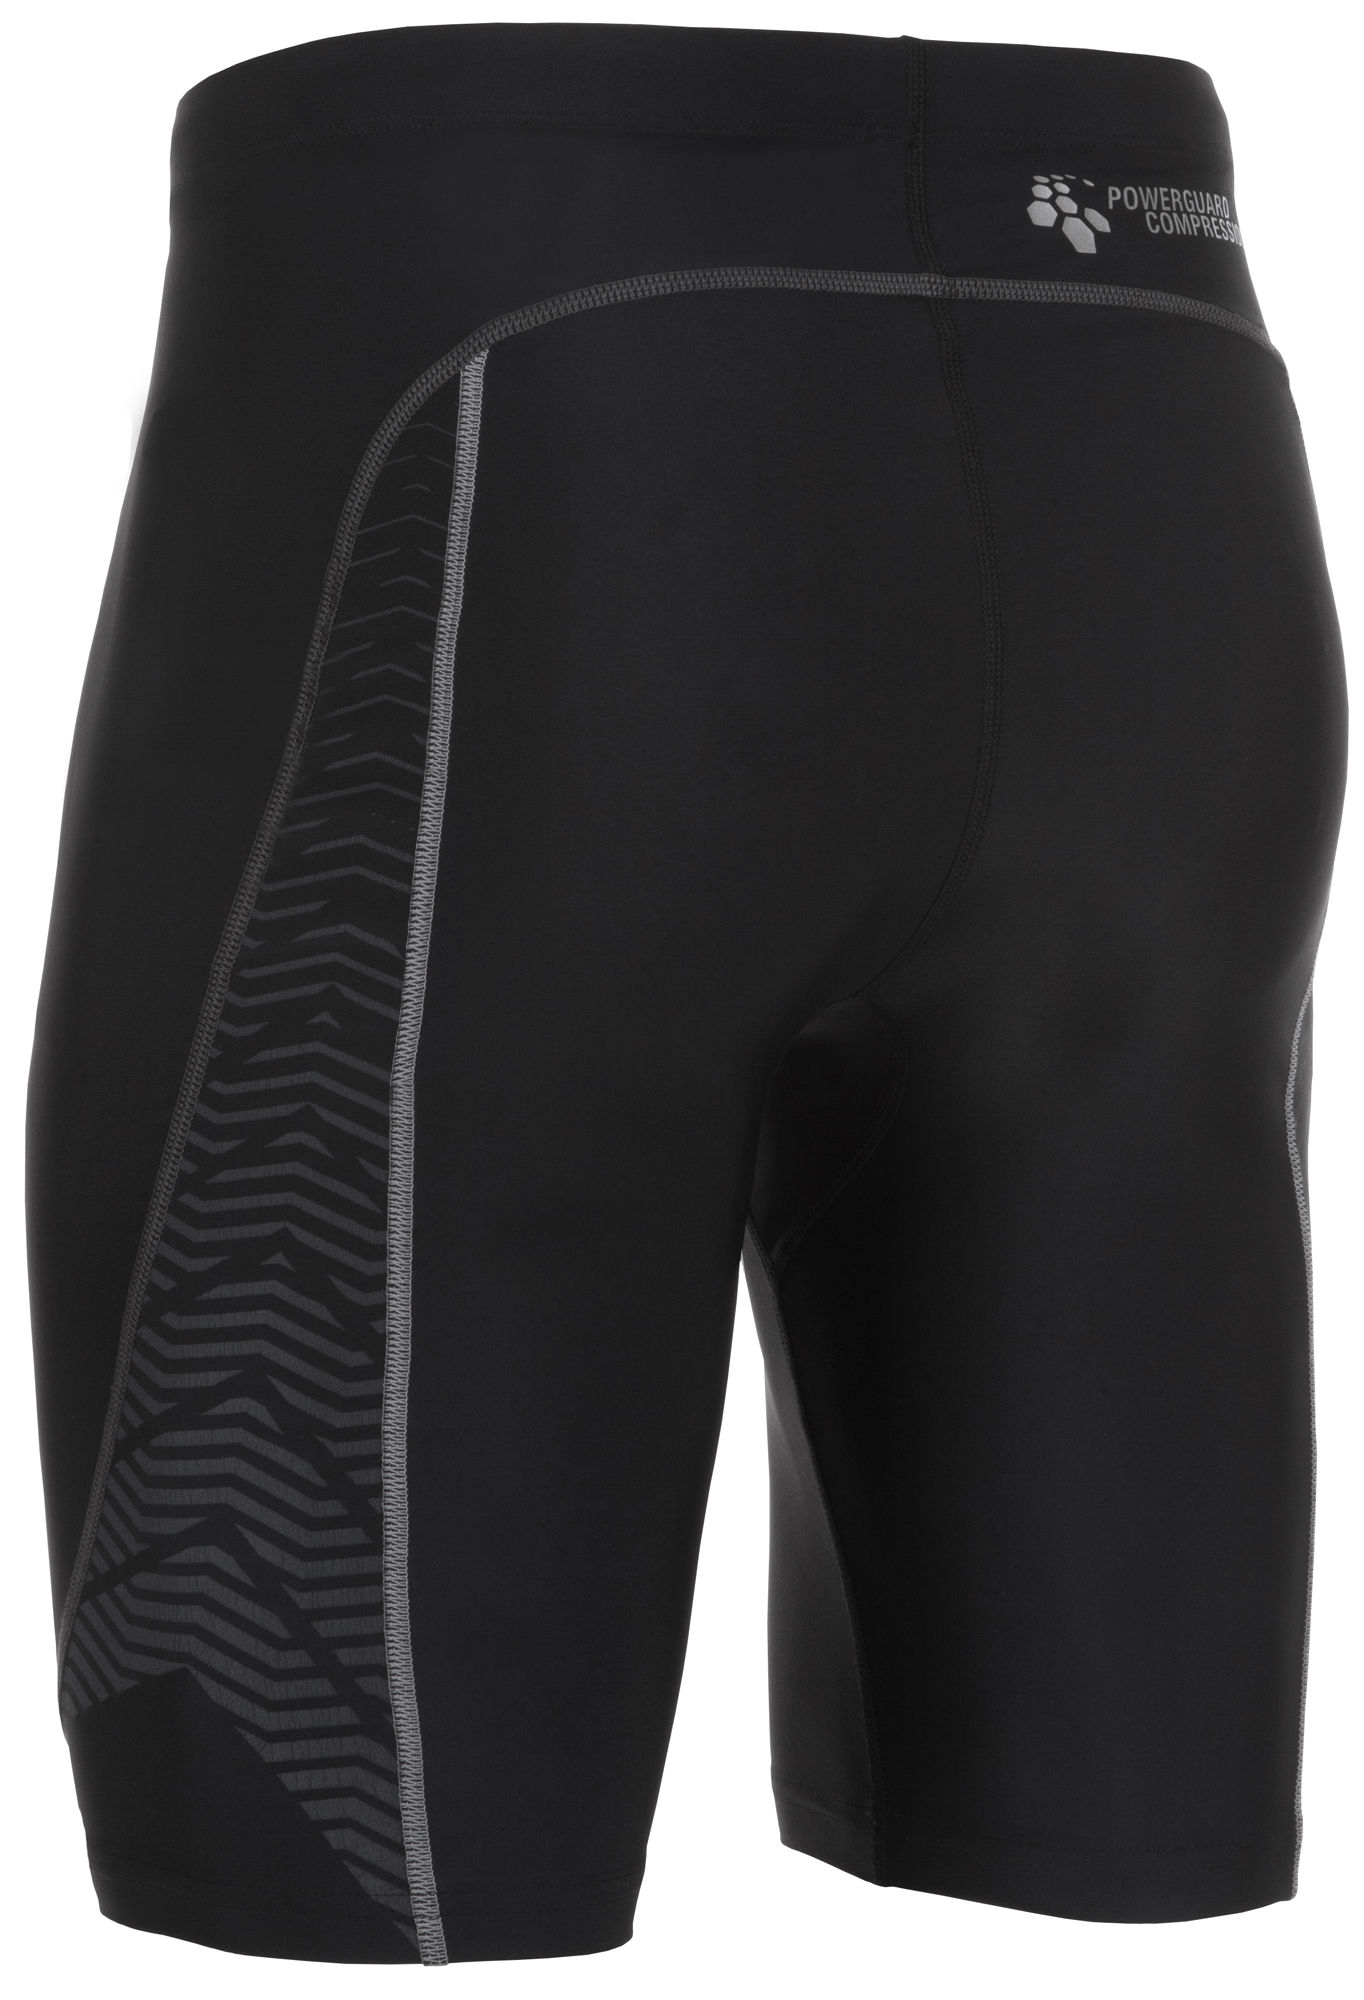 5360080590---Mens-Compression-Short